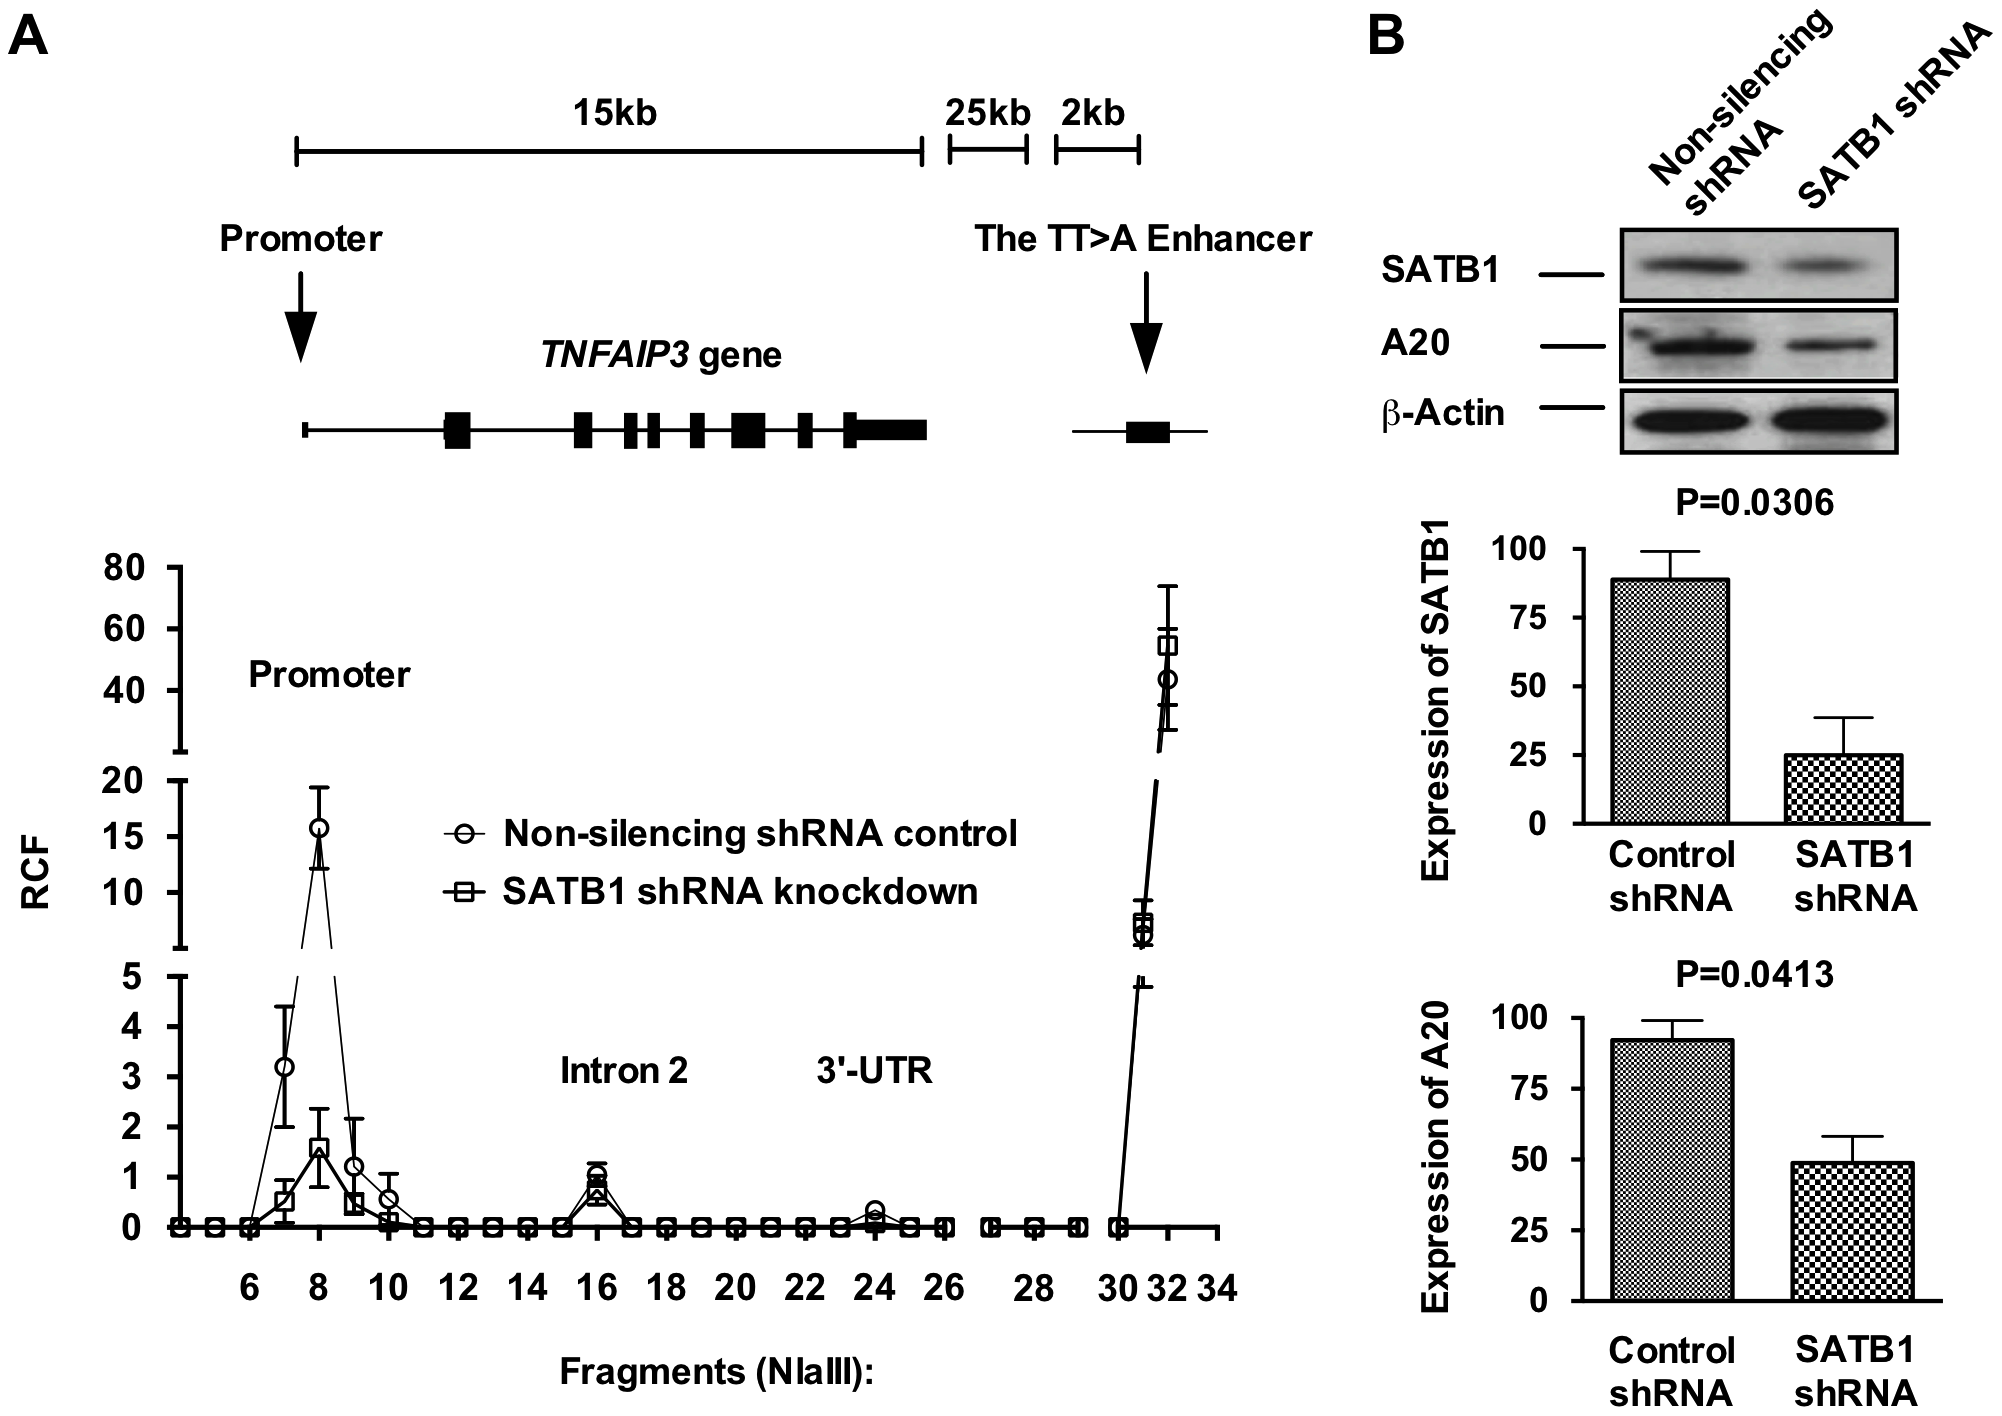 SATB1 is required for the TT>A enhancer-promoter interaction and <i>TNFAIP3</i> transcription.